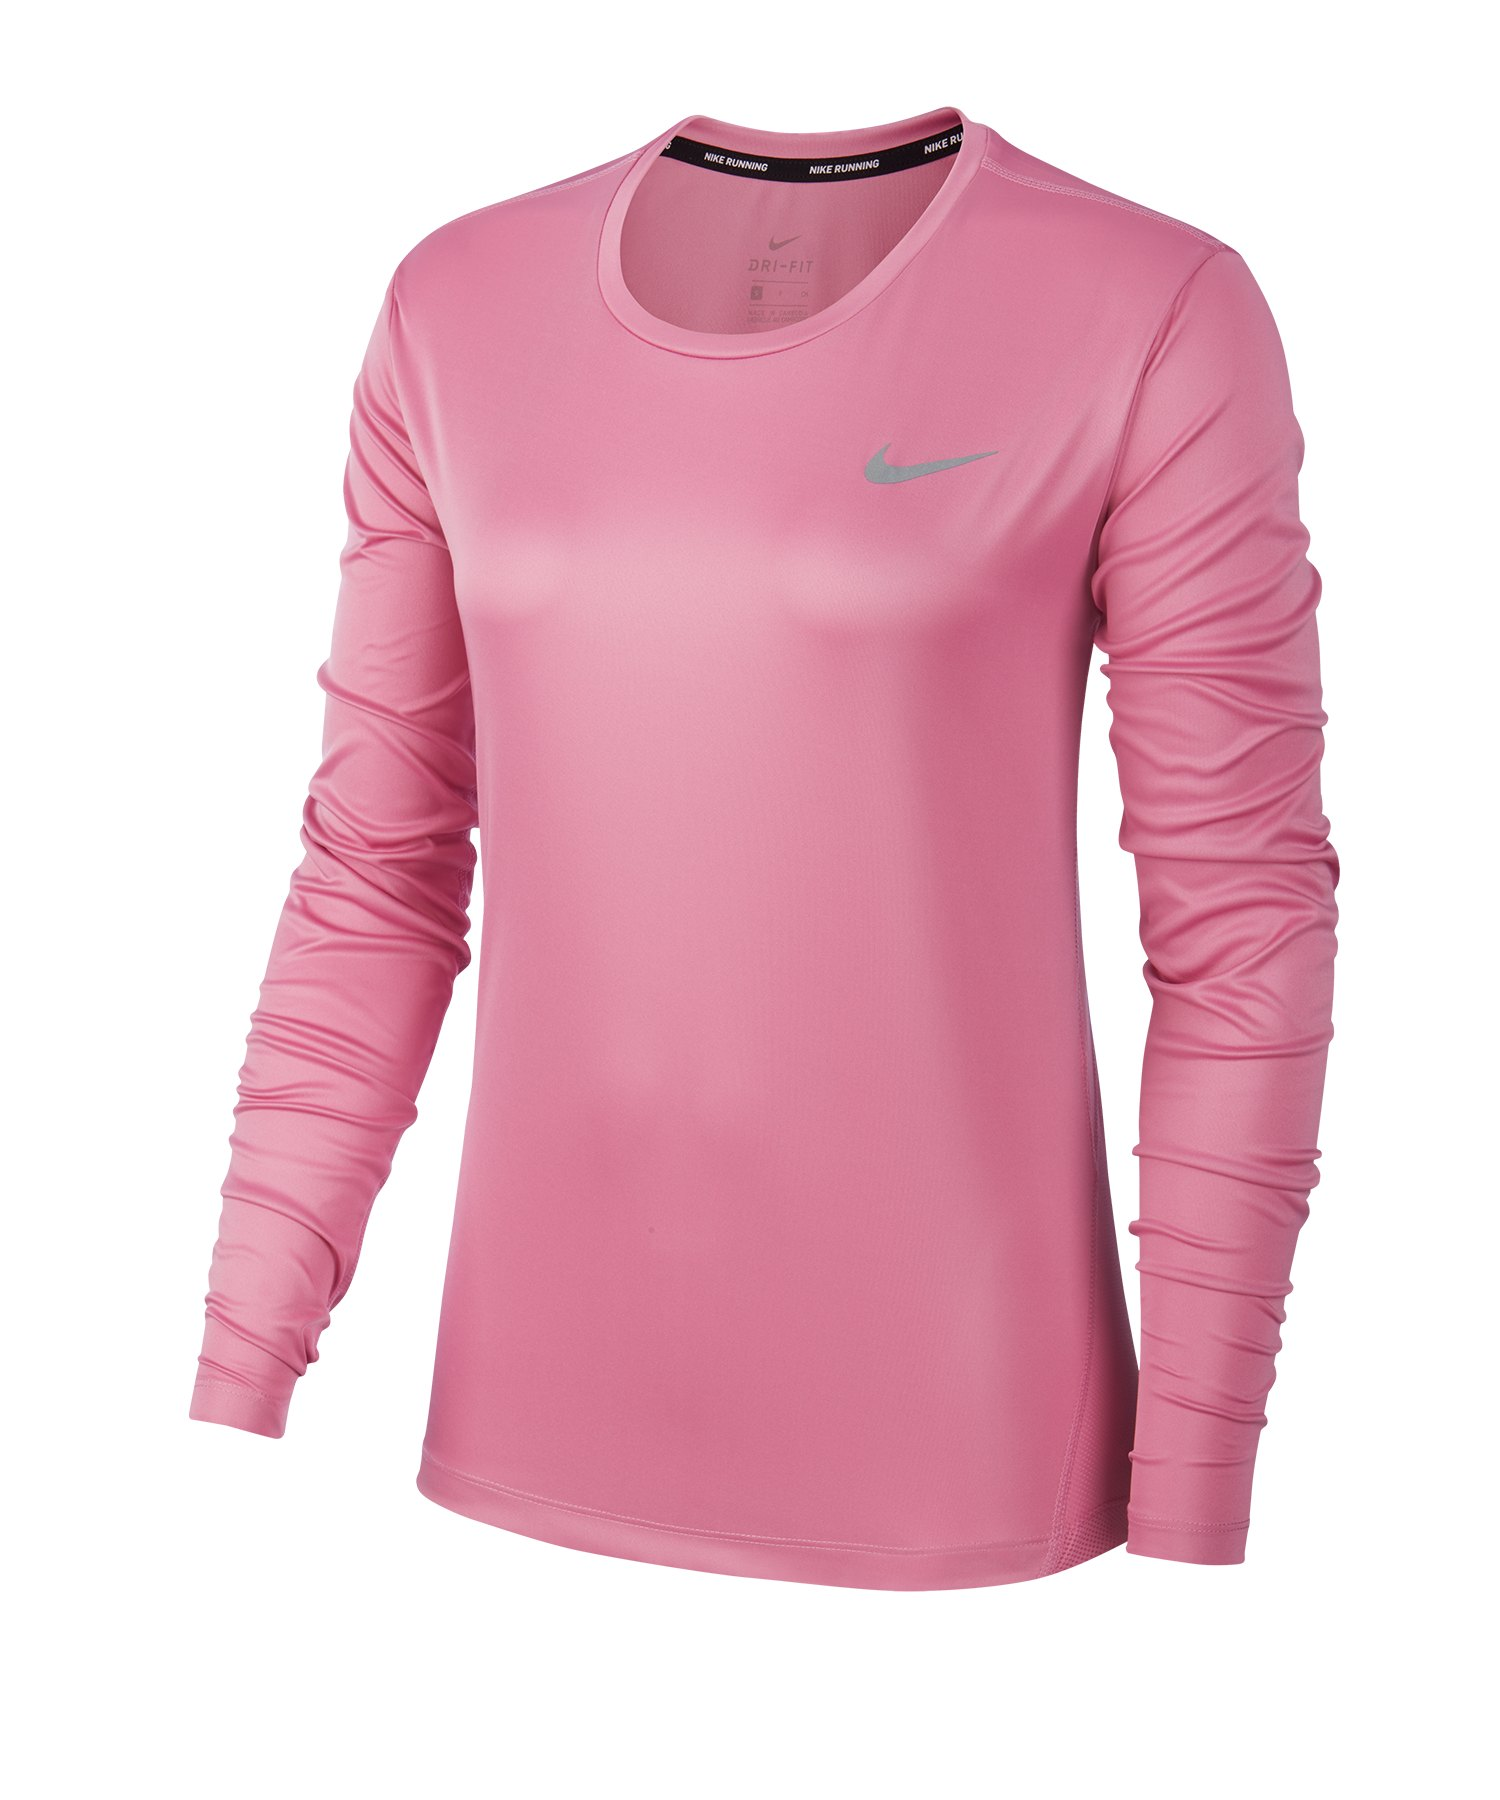 Nike Damen DRI FIT Sport Running Fitness Langarm Shirt